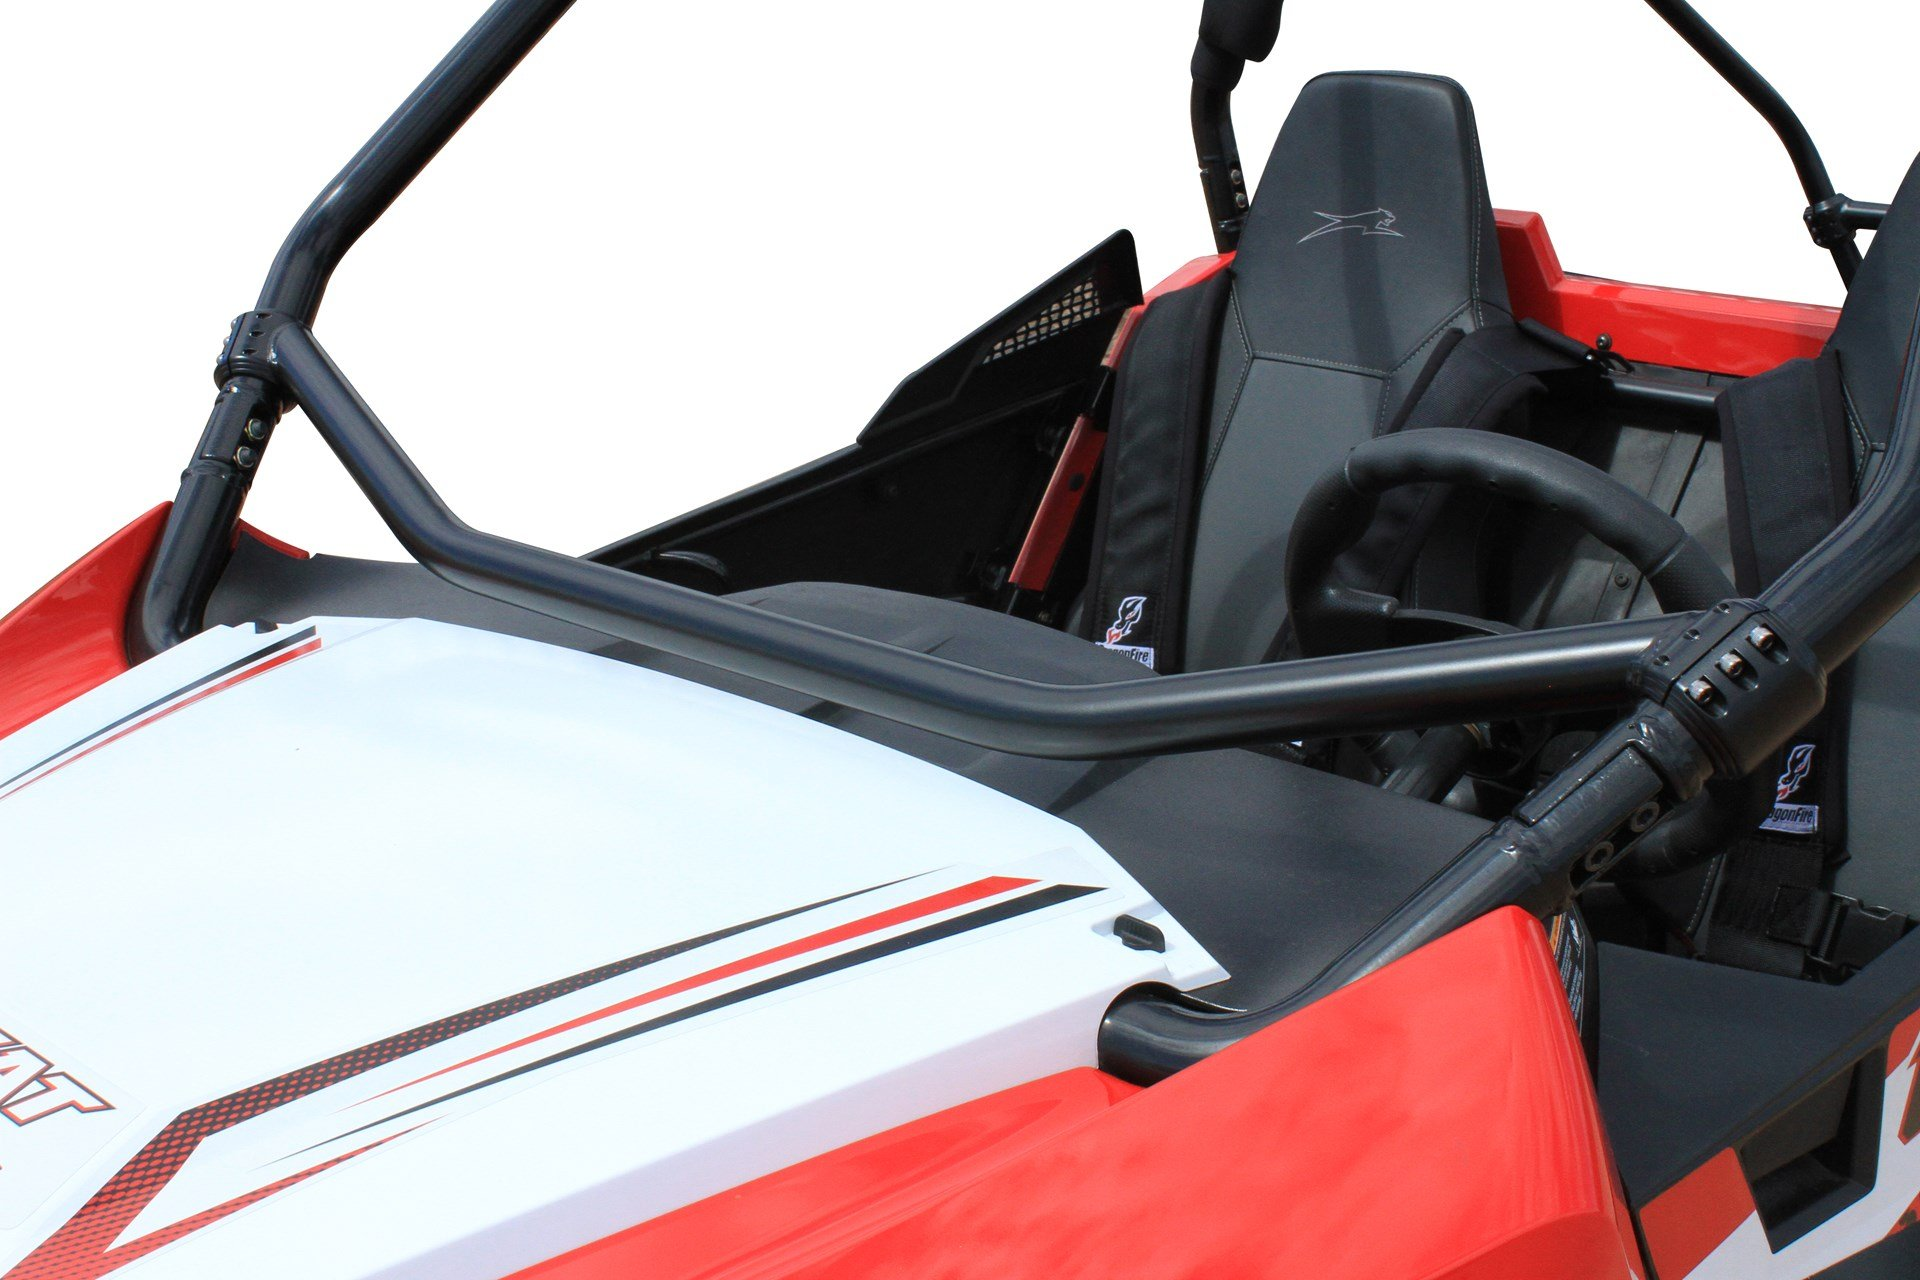 Bundle 2 items: Dragonfire Racing RockSolid Dash Bar for Wildcat Trail/Sport and Free Unhinged ATV HAT!